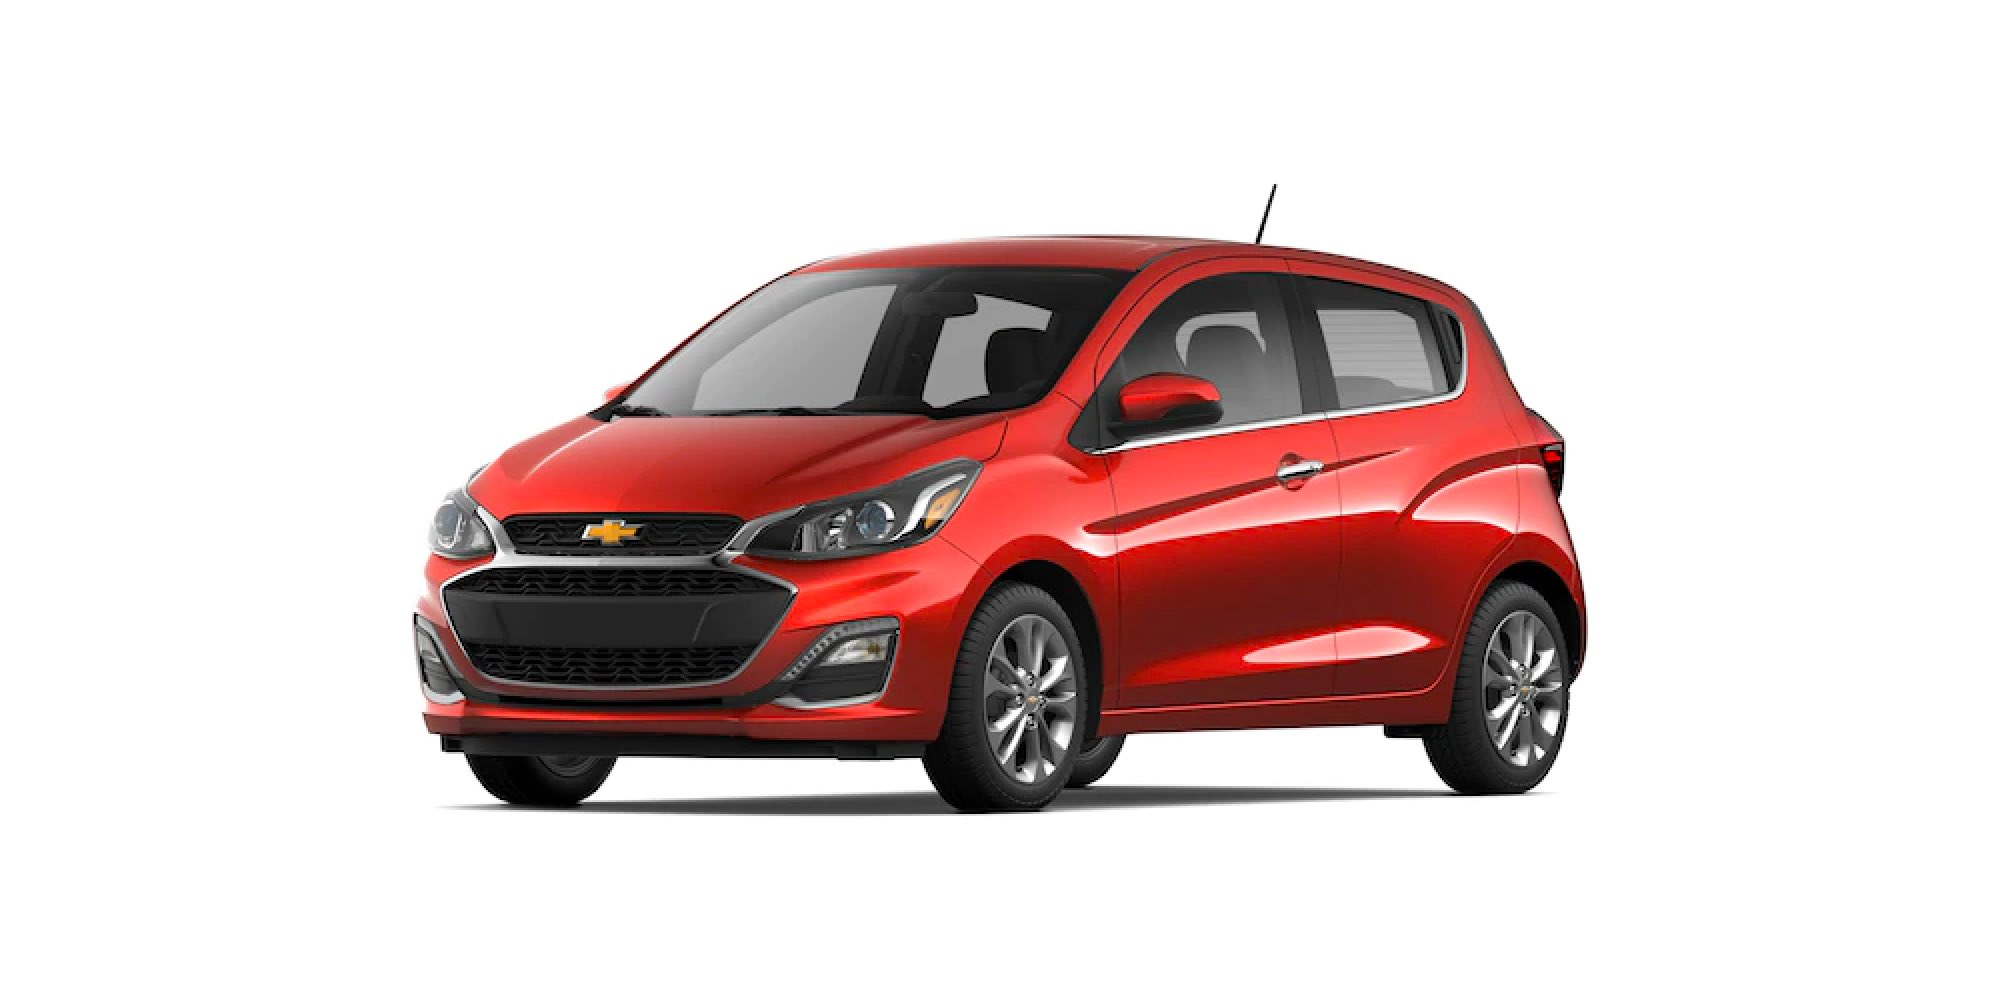 2021 Chevy Spark in Cayenne Orange